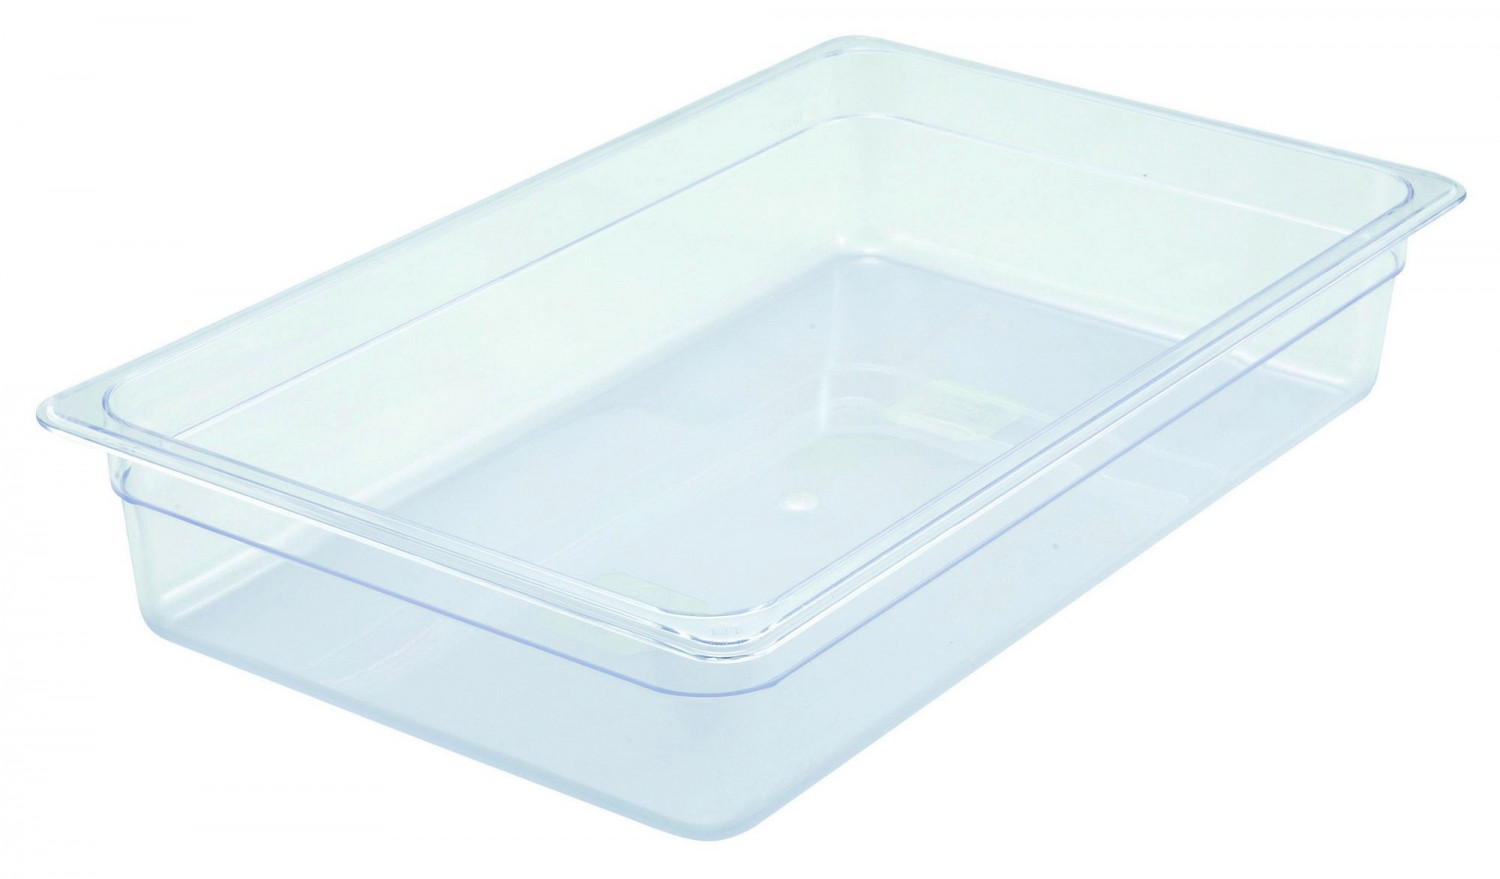 Winco SP7104 Full Size Food Pan 4